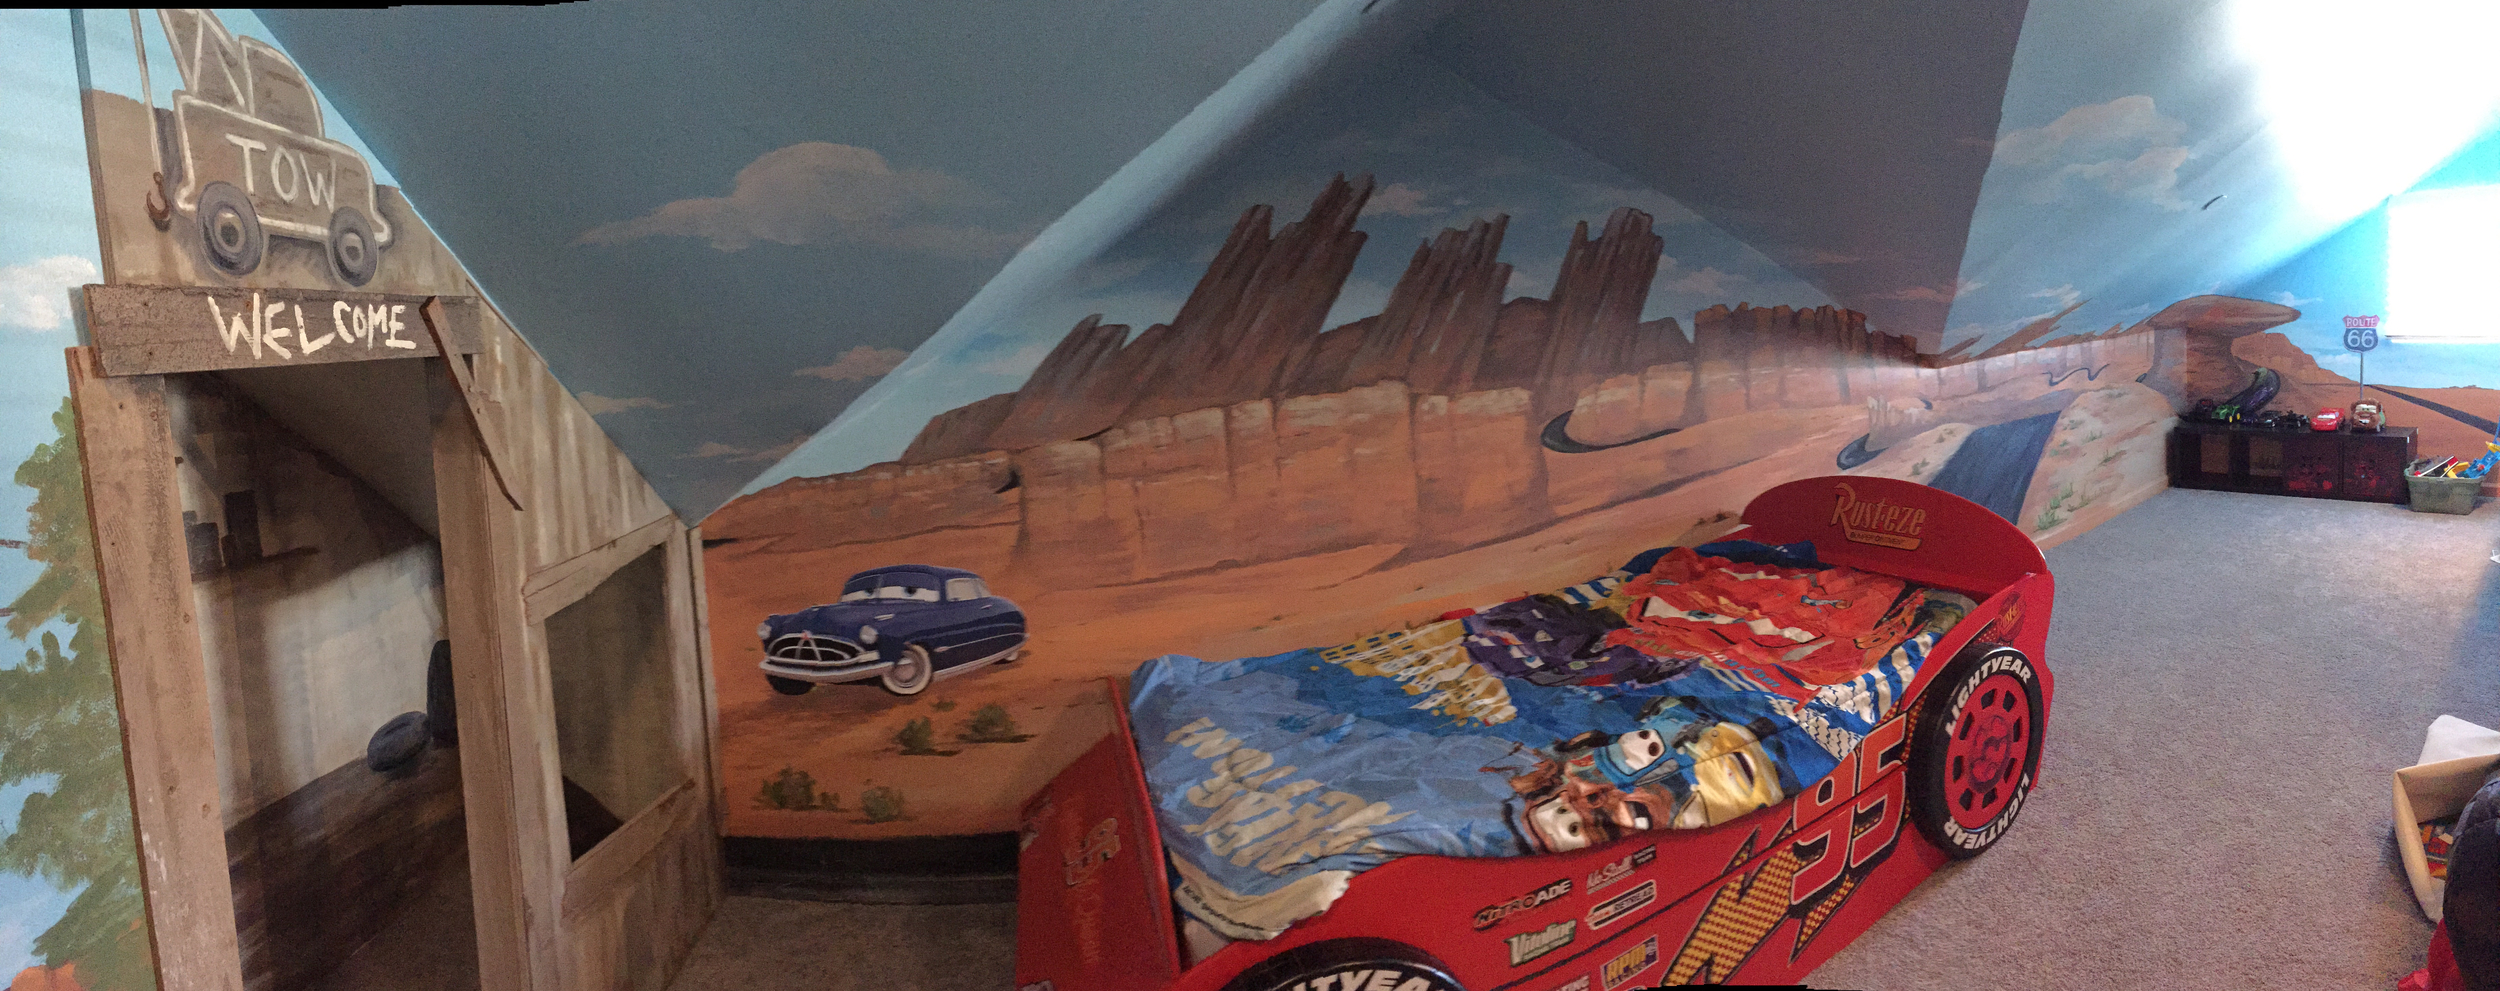 CARS Inspired Mural and Playspace with Disney licensed decals